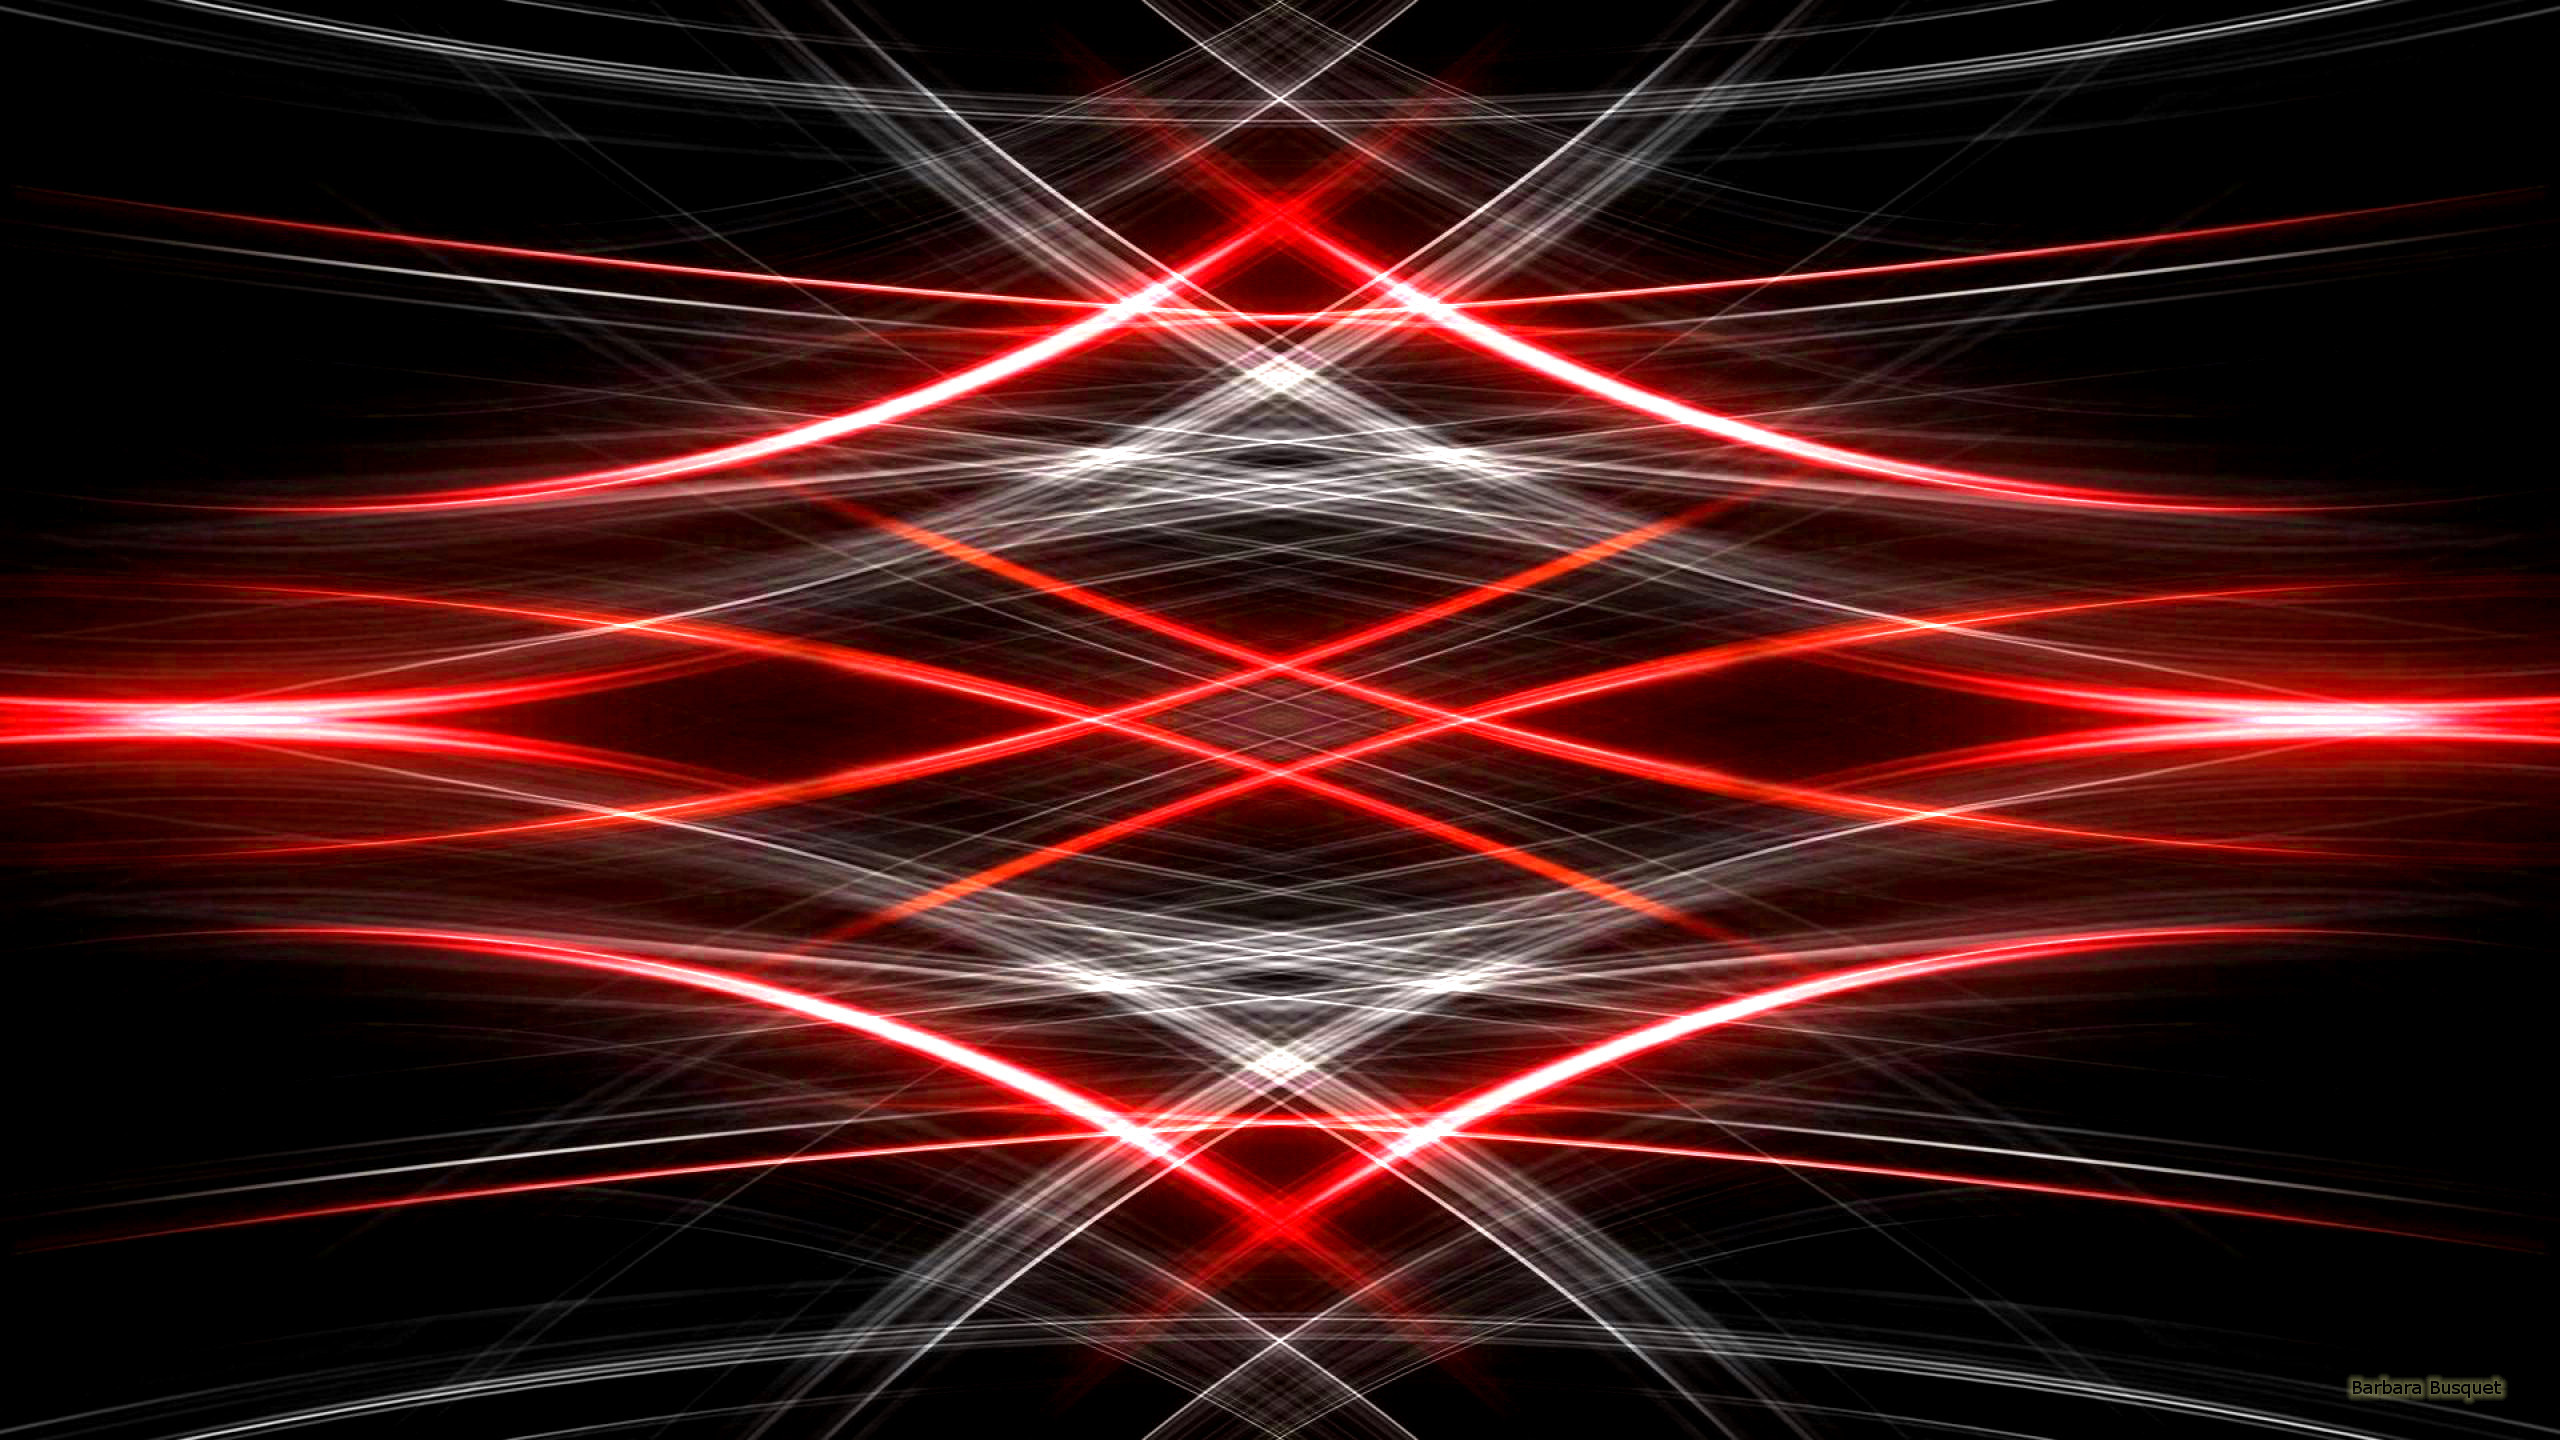 2560x1440 Black abstract wallpaper with red and white lights. The lines are mirrored.